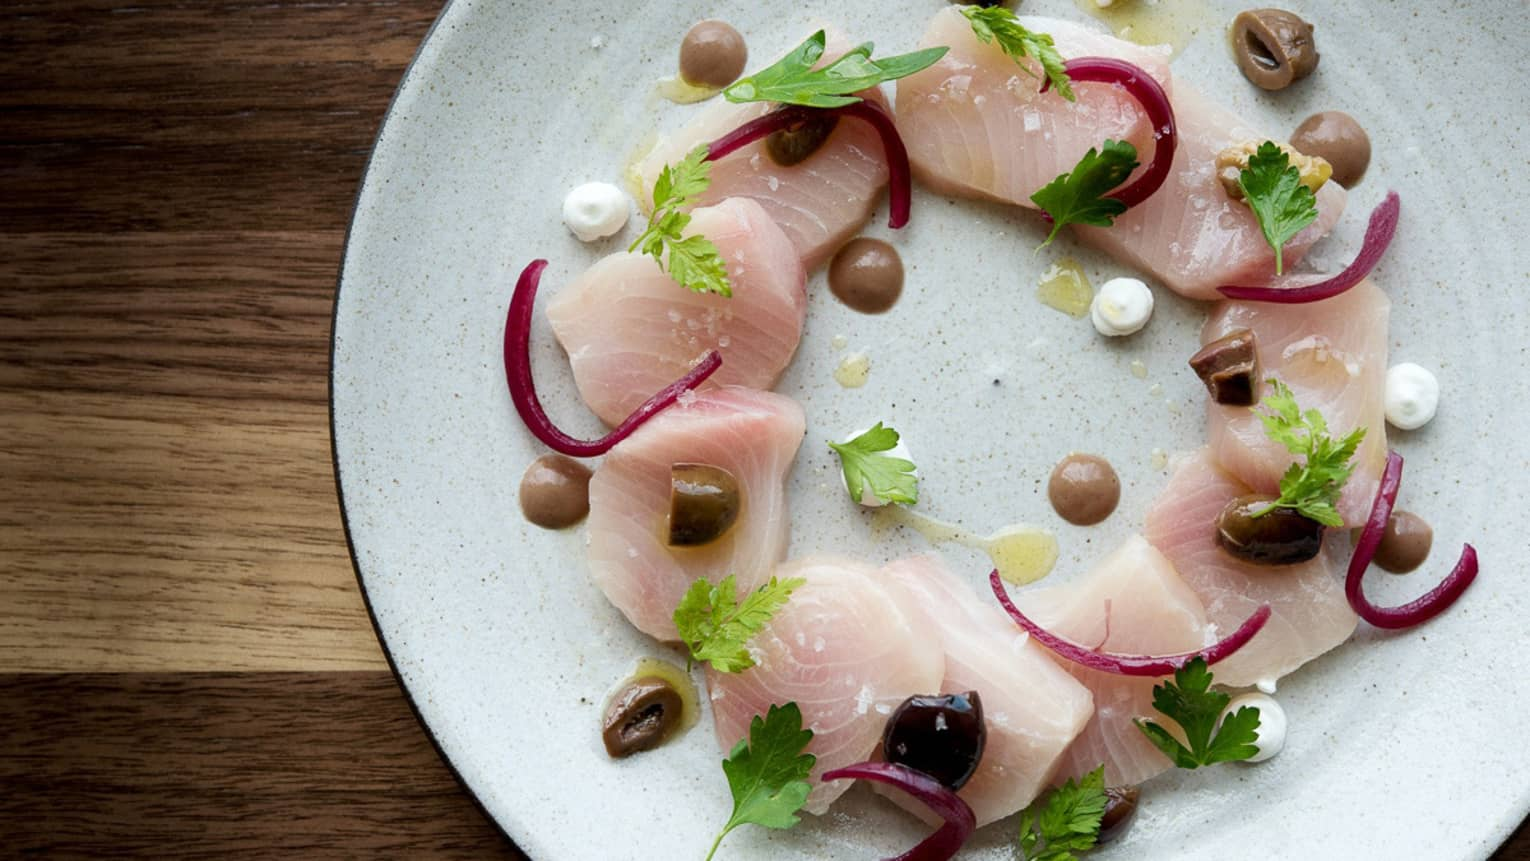 Hamachi Crudo slices of raw fish arranged in circle on plate with garnish